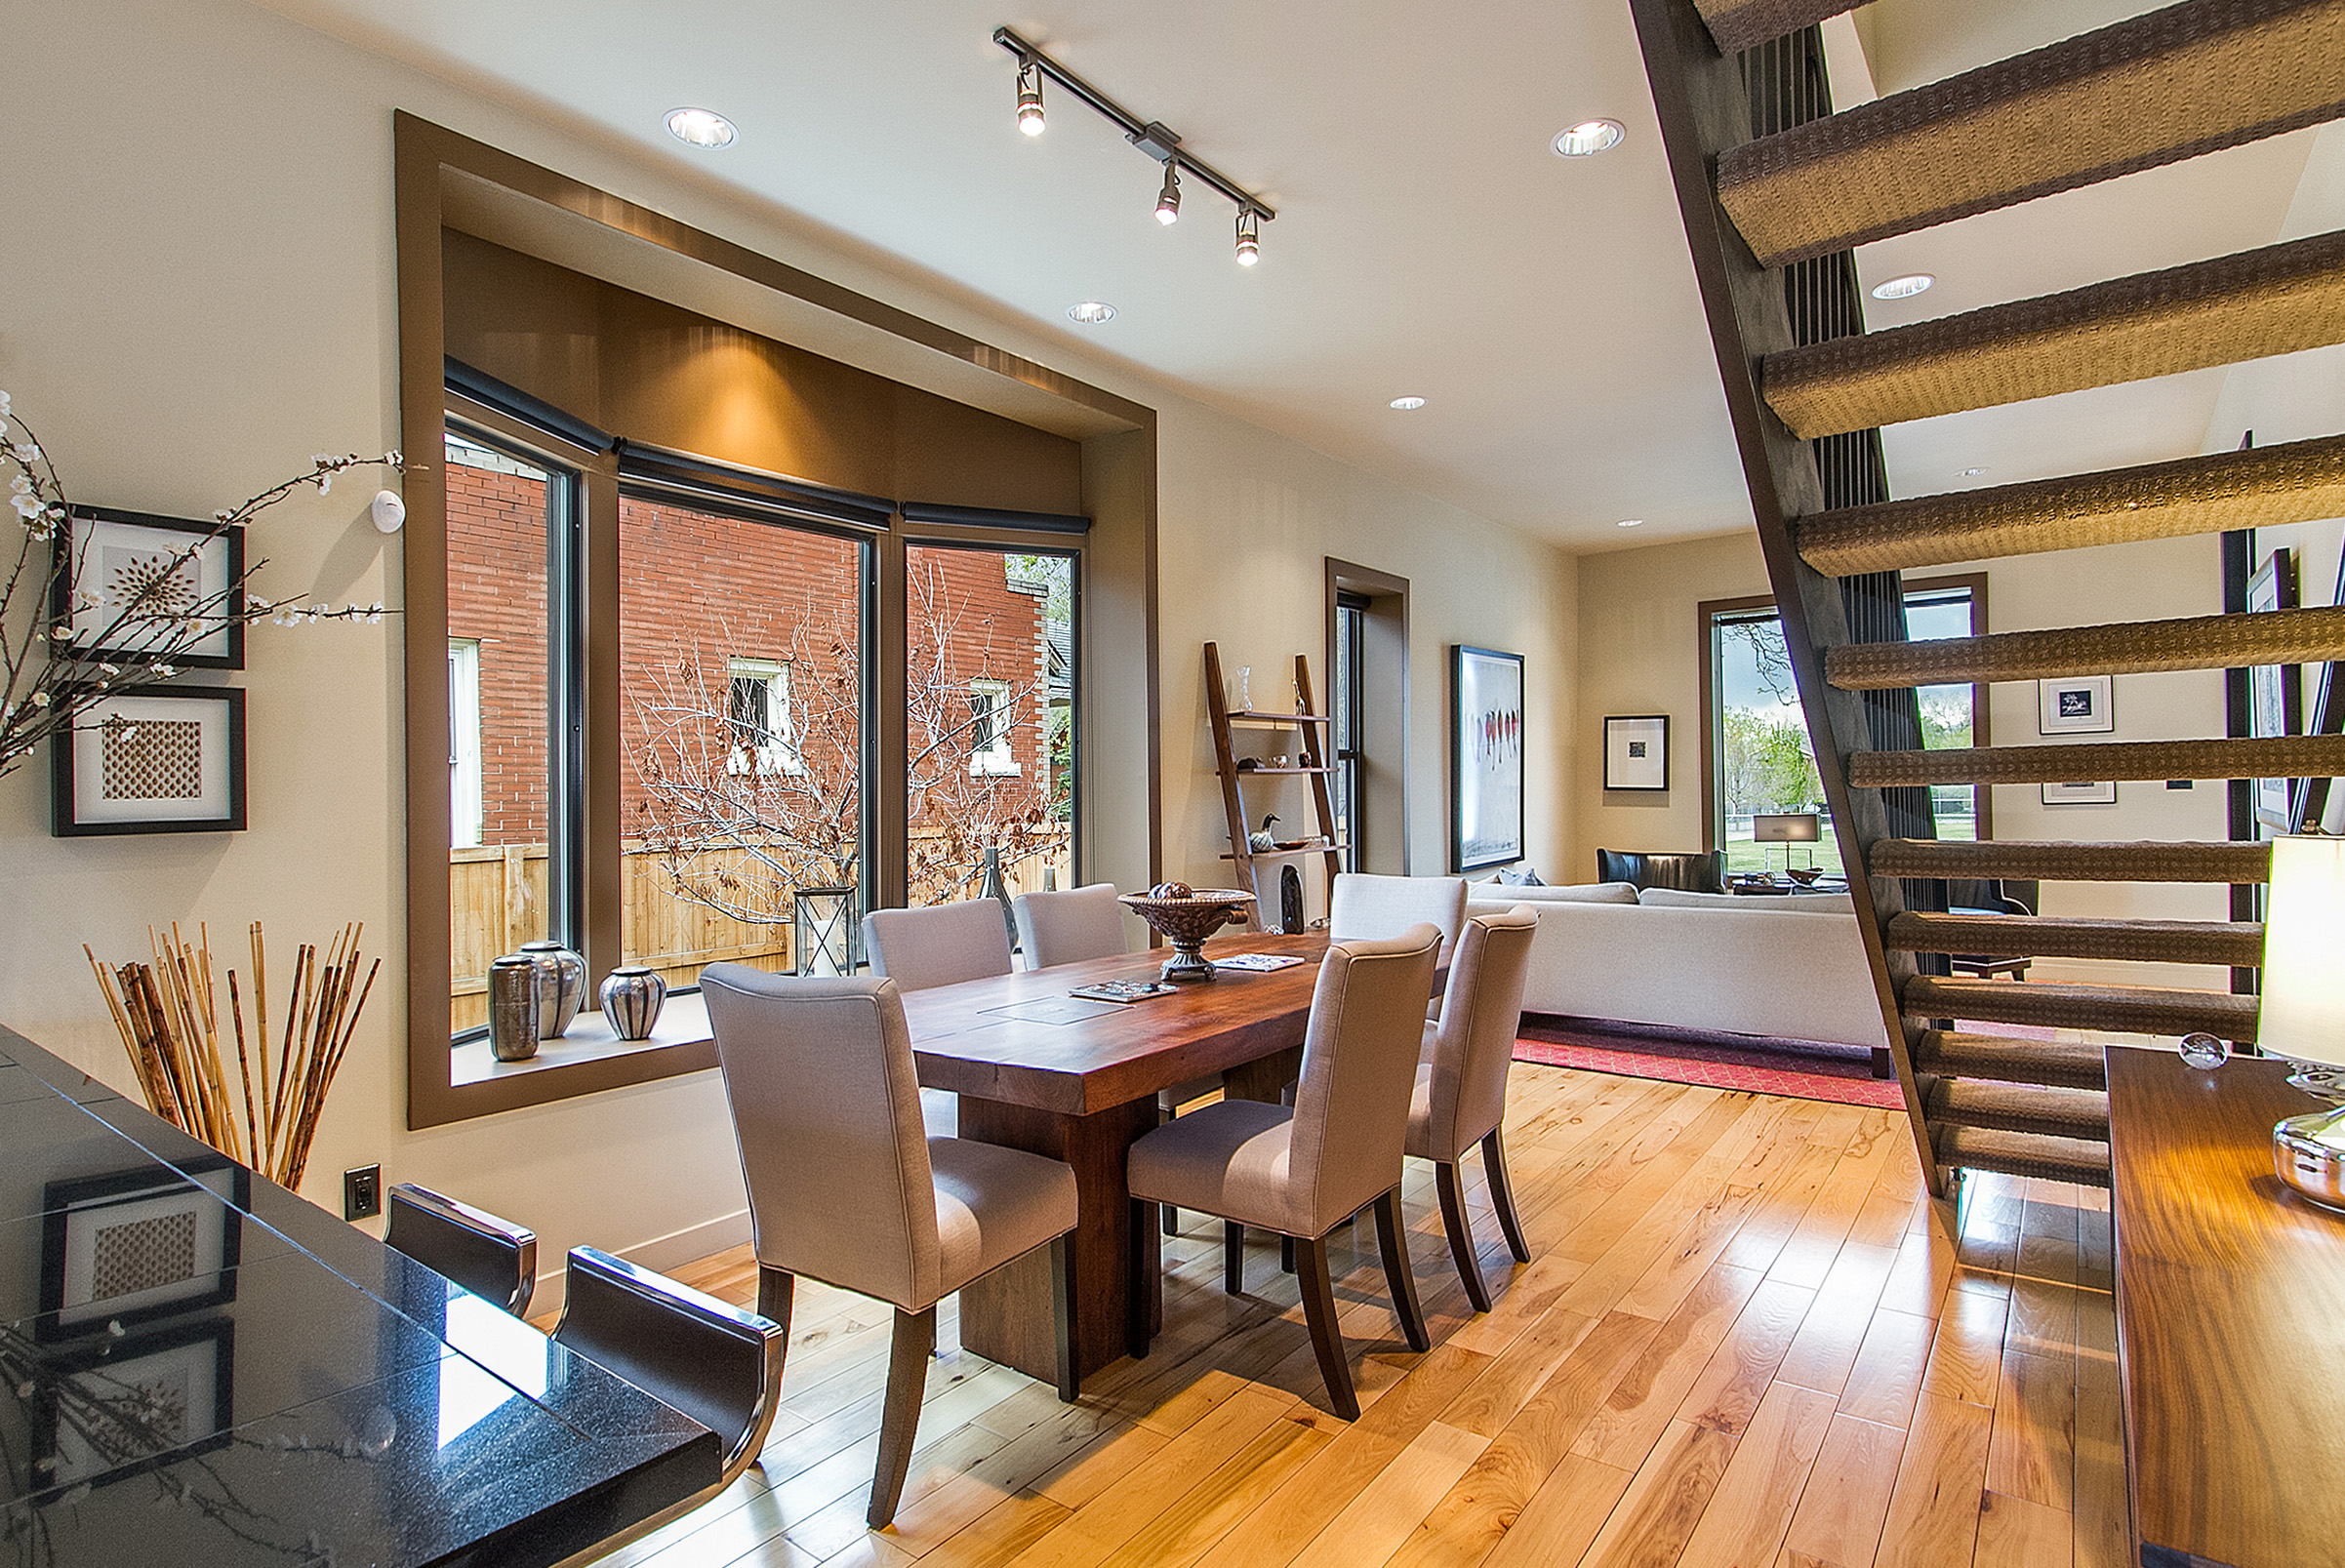 Single Family Home for Sale at Professionally Remodeled and Updated Home in Pristine Condition! 752 S. Pearl Street Washington Park, Denver, Colorado 80209 United States